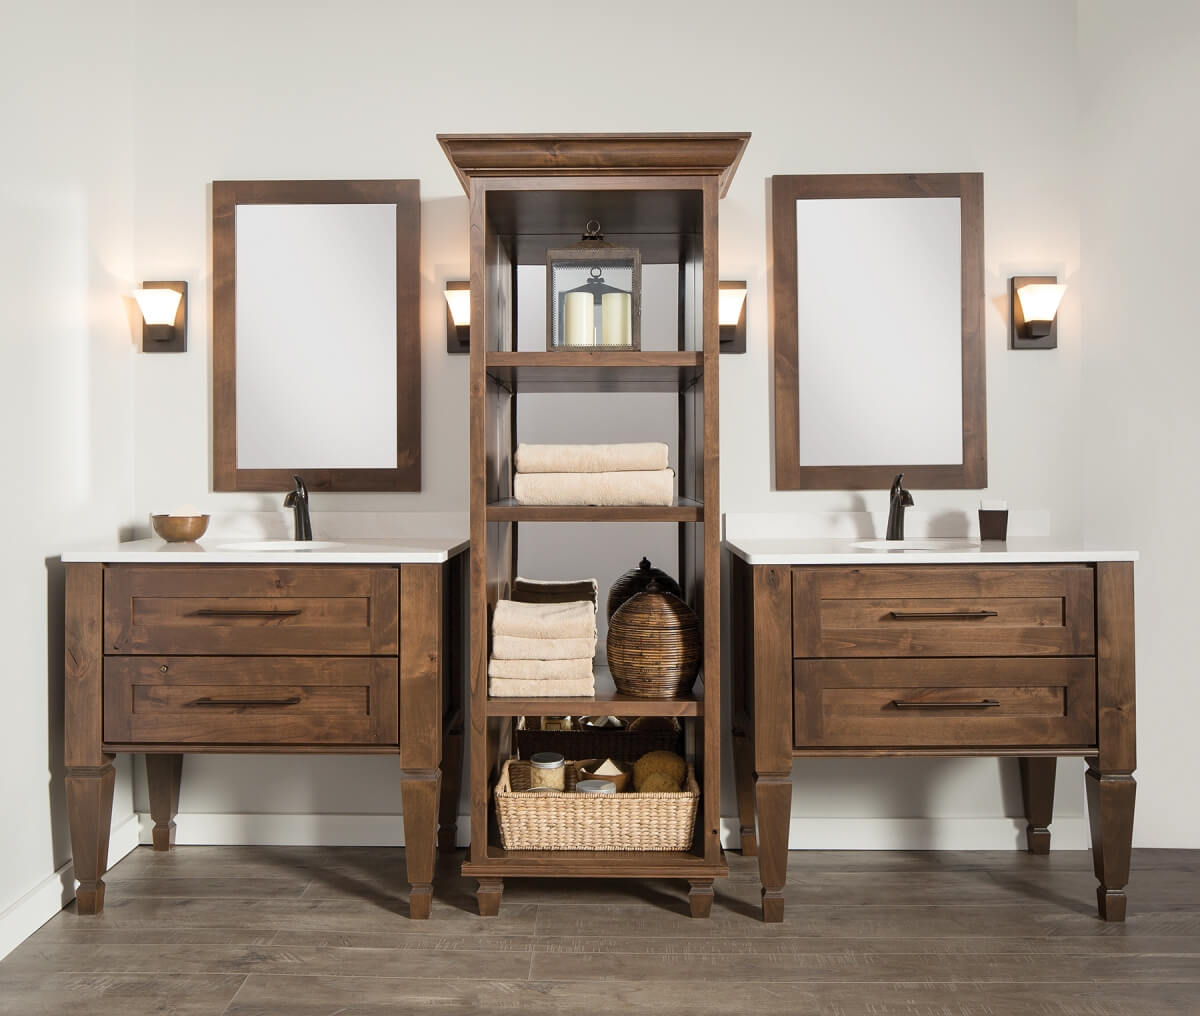 A master bathroom with double vanities featuring a tall freestanding linen cabinet with a mirror in the back of the cabinetry.